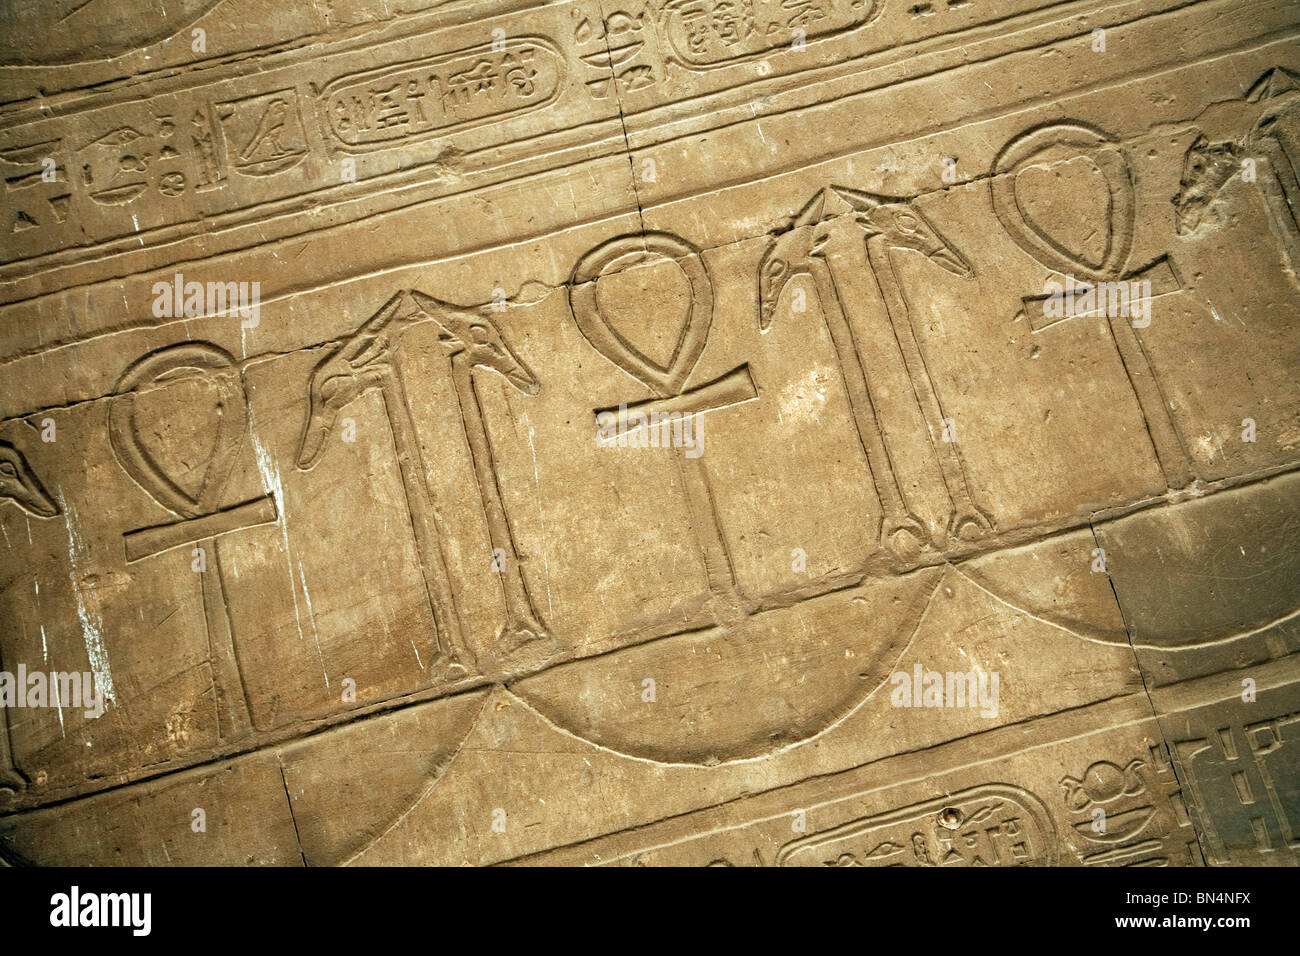 Hieroglyphics and Bas relief carved pictures of the Ankh, at Edfu temple, Egypt - Stock Image